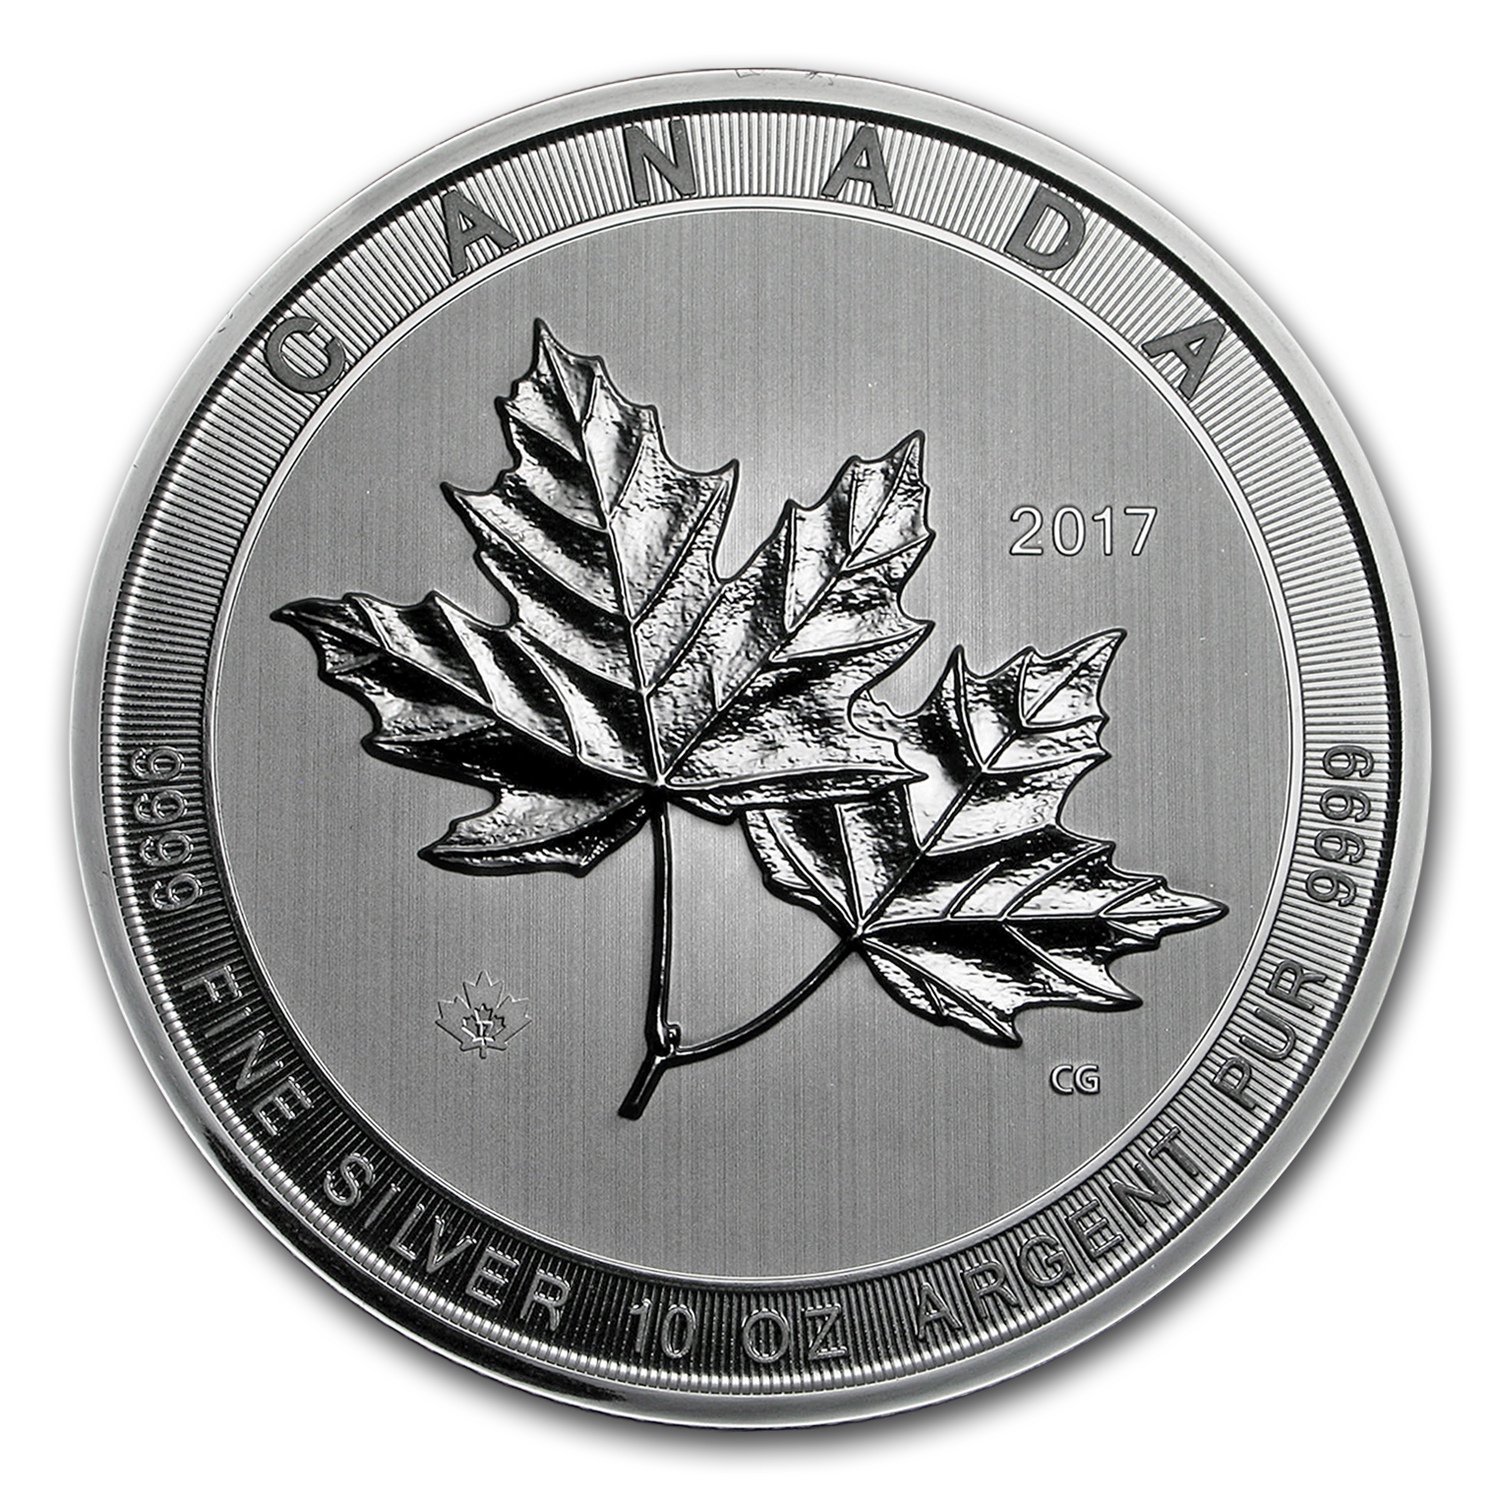 2017 Canada 10 oz Silver $50 Magnificent Maple Leaves BU